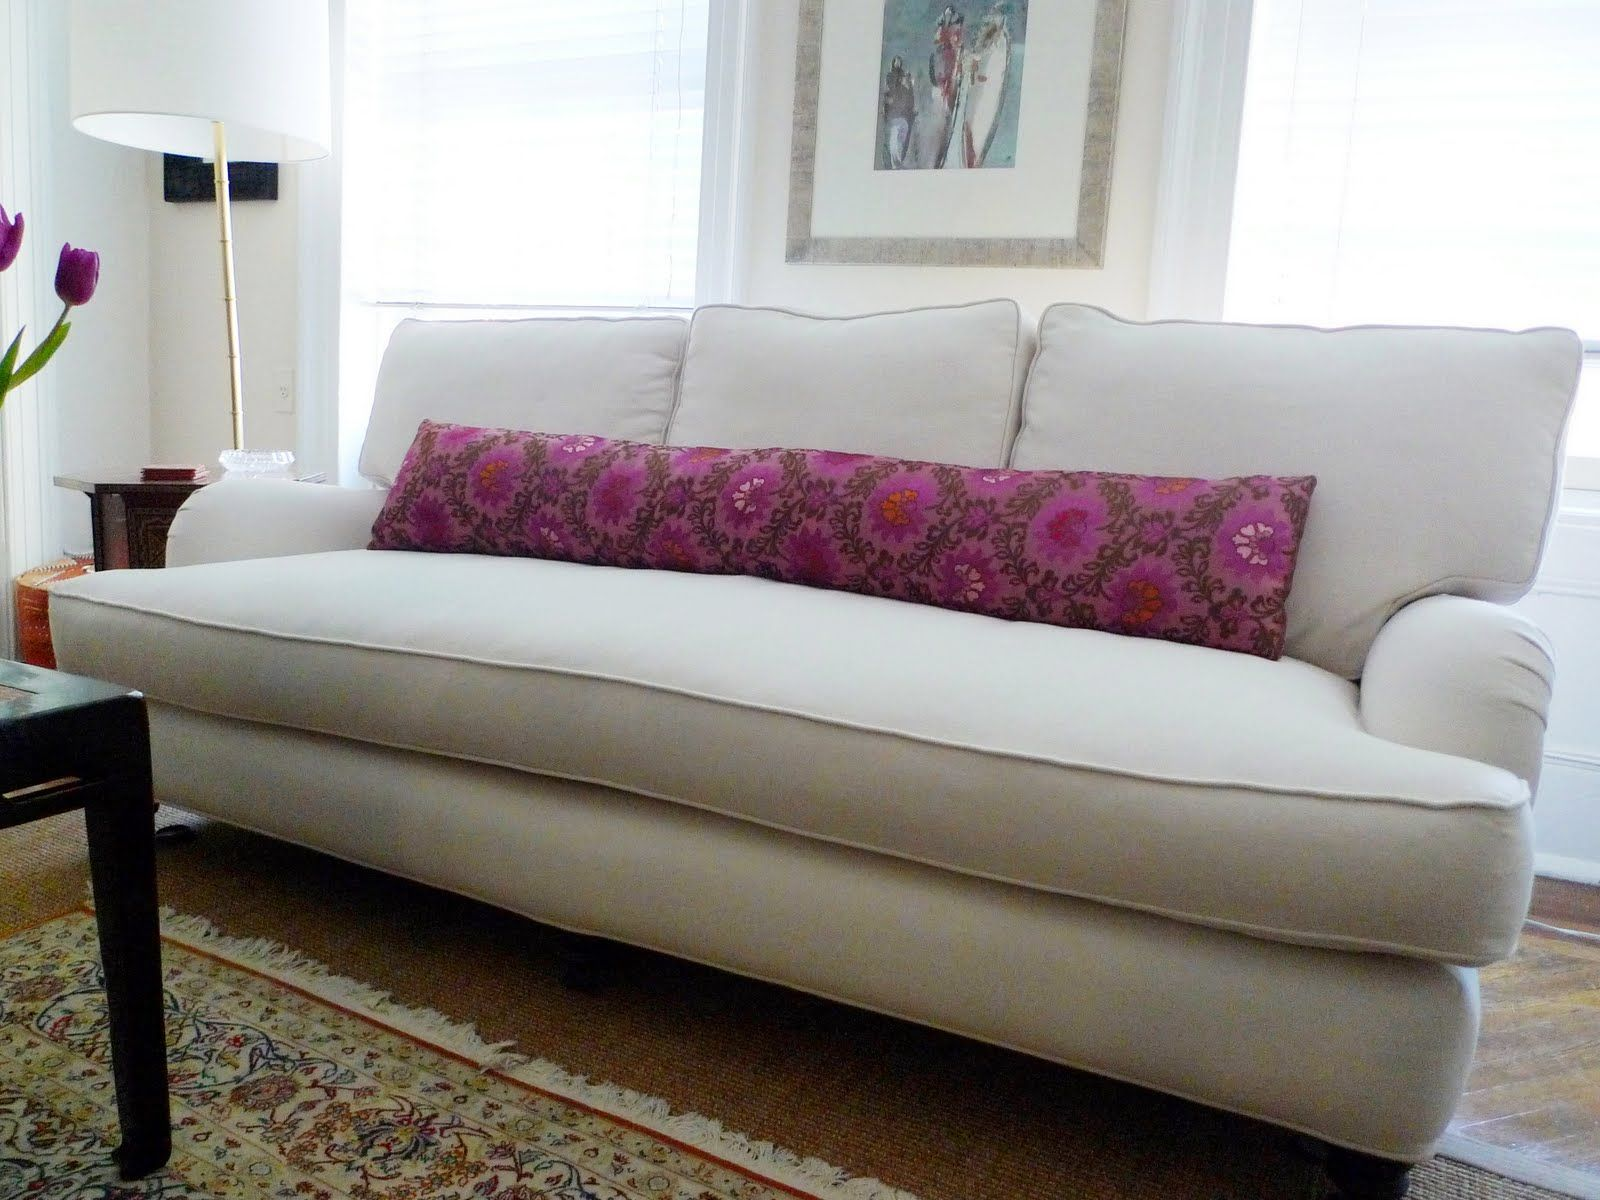 BEFORE & AFTER MICRO MAKEOVER ANATOMY OF A NYC SOFA REDO